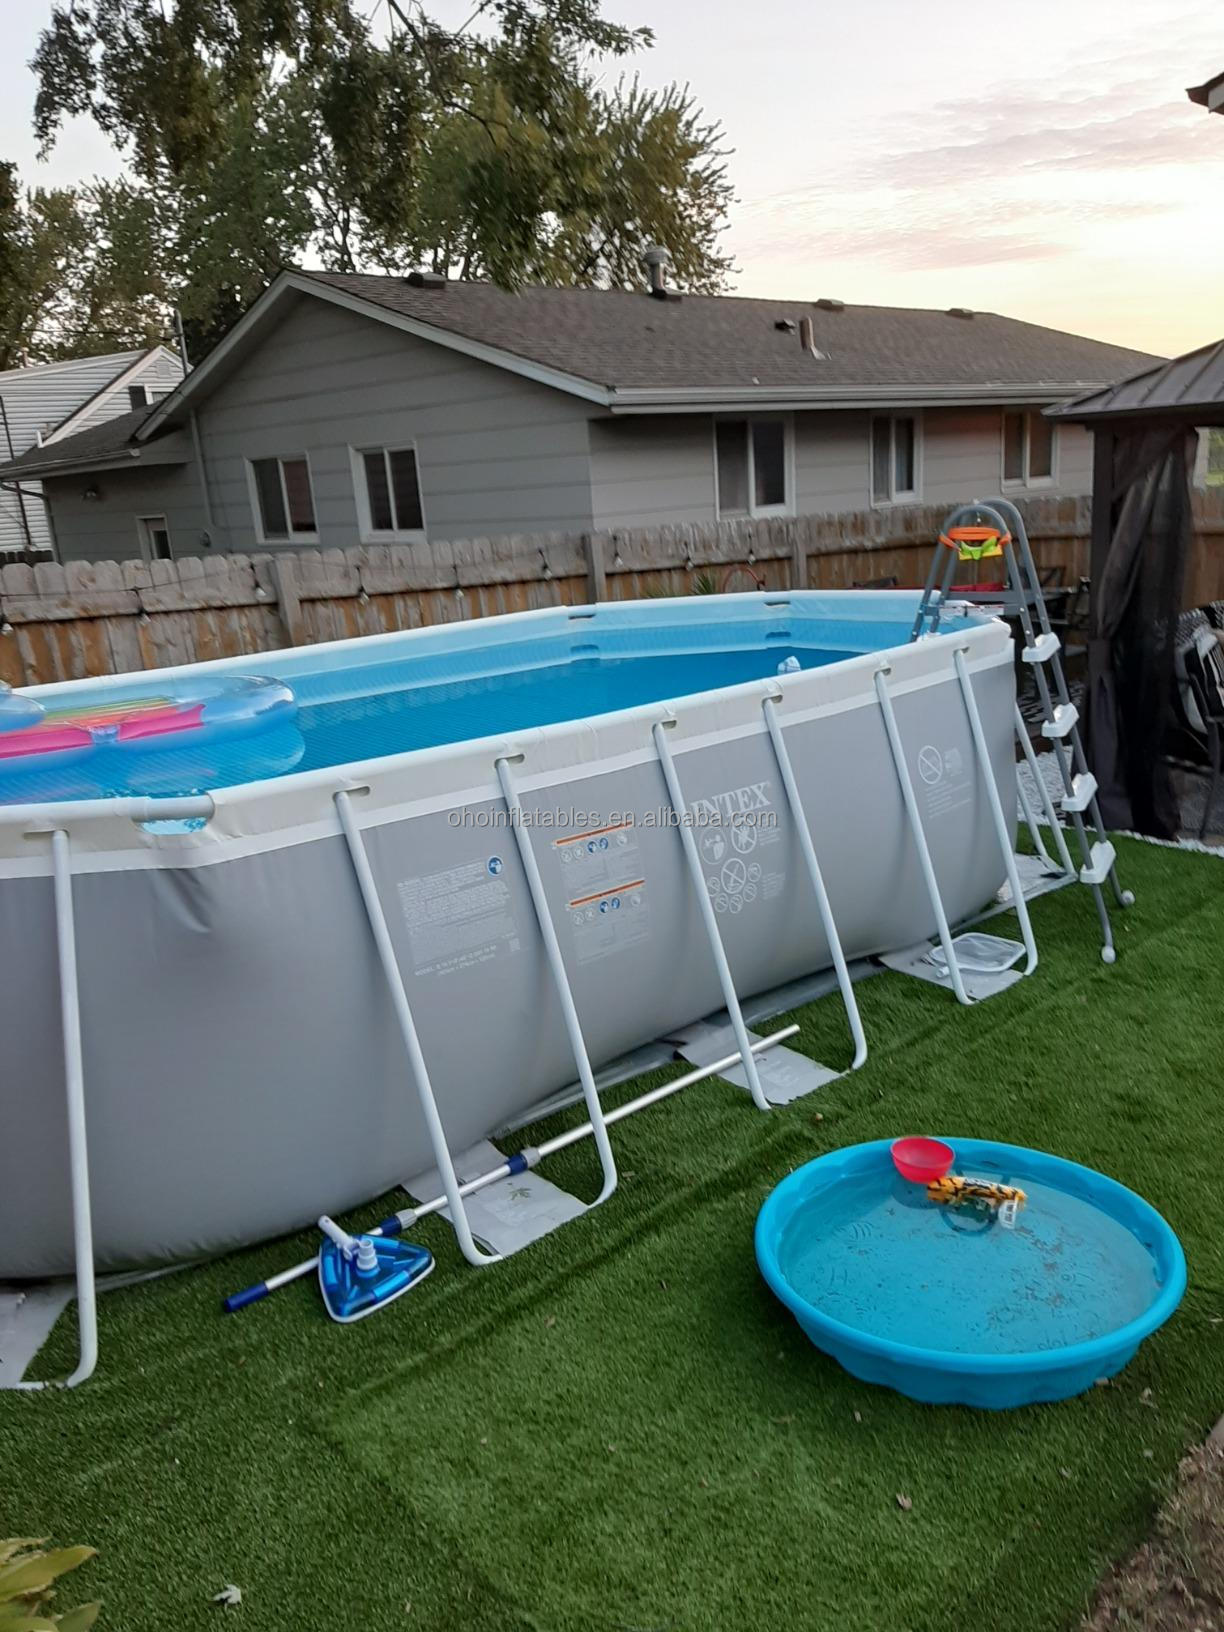 Rectangular Metal Frame Swimming Pool Steel Above Ground Training Pool Outdoor Pvc Water Park Pool For Home Use Buy Rectangular Metal Frame Swimming Pool For Indoor Outdoor Above Ground Training Pool For